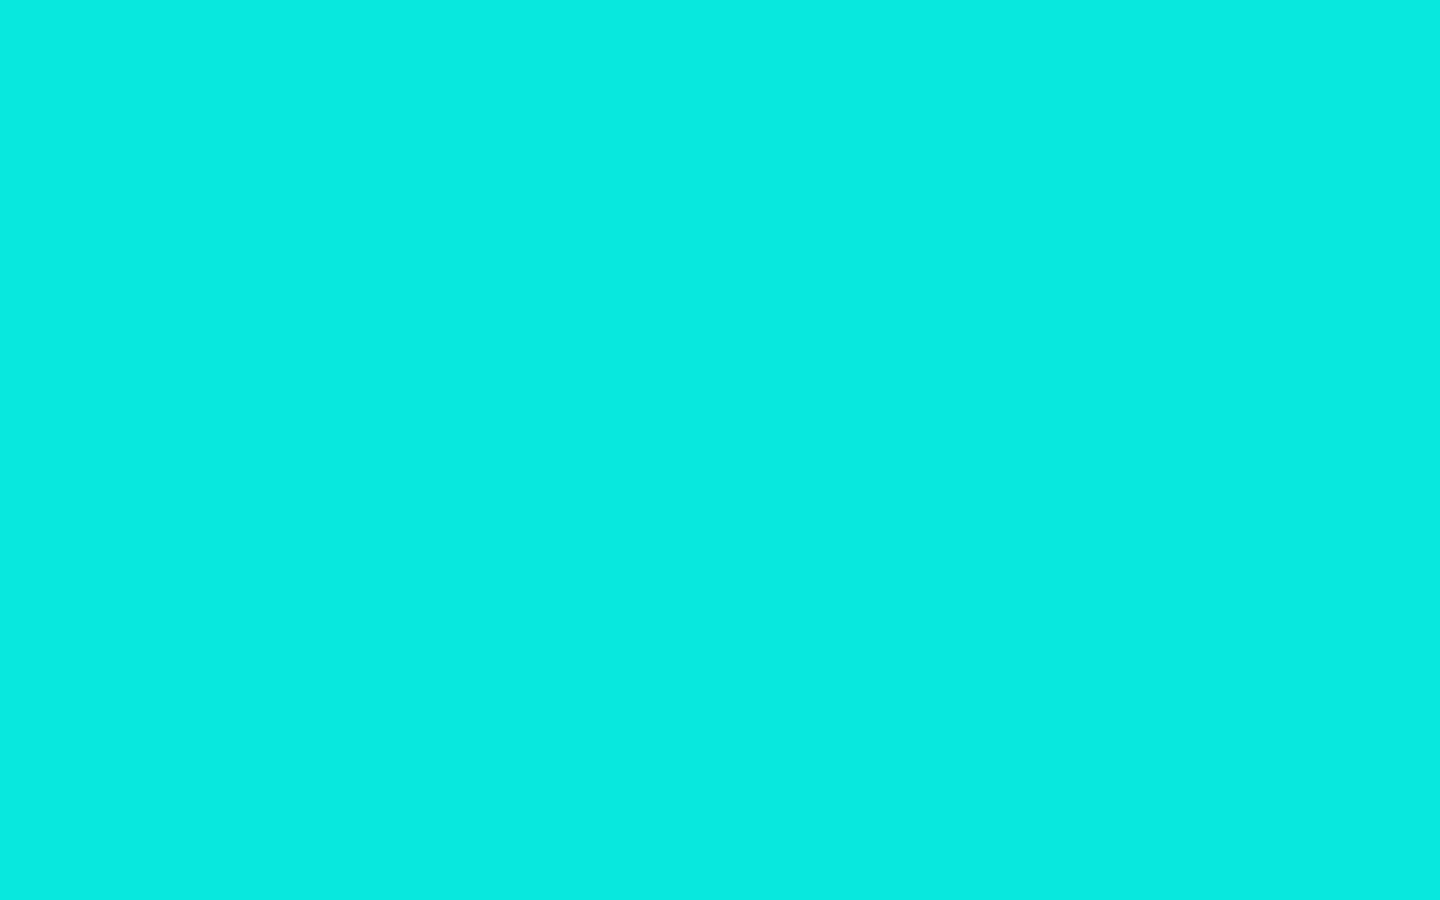 alfa img showing bright turquoise color background